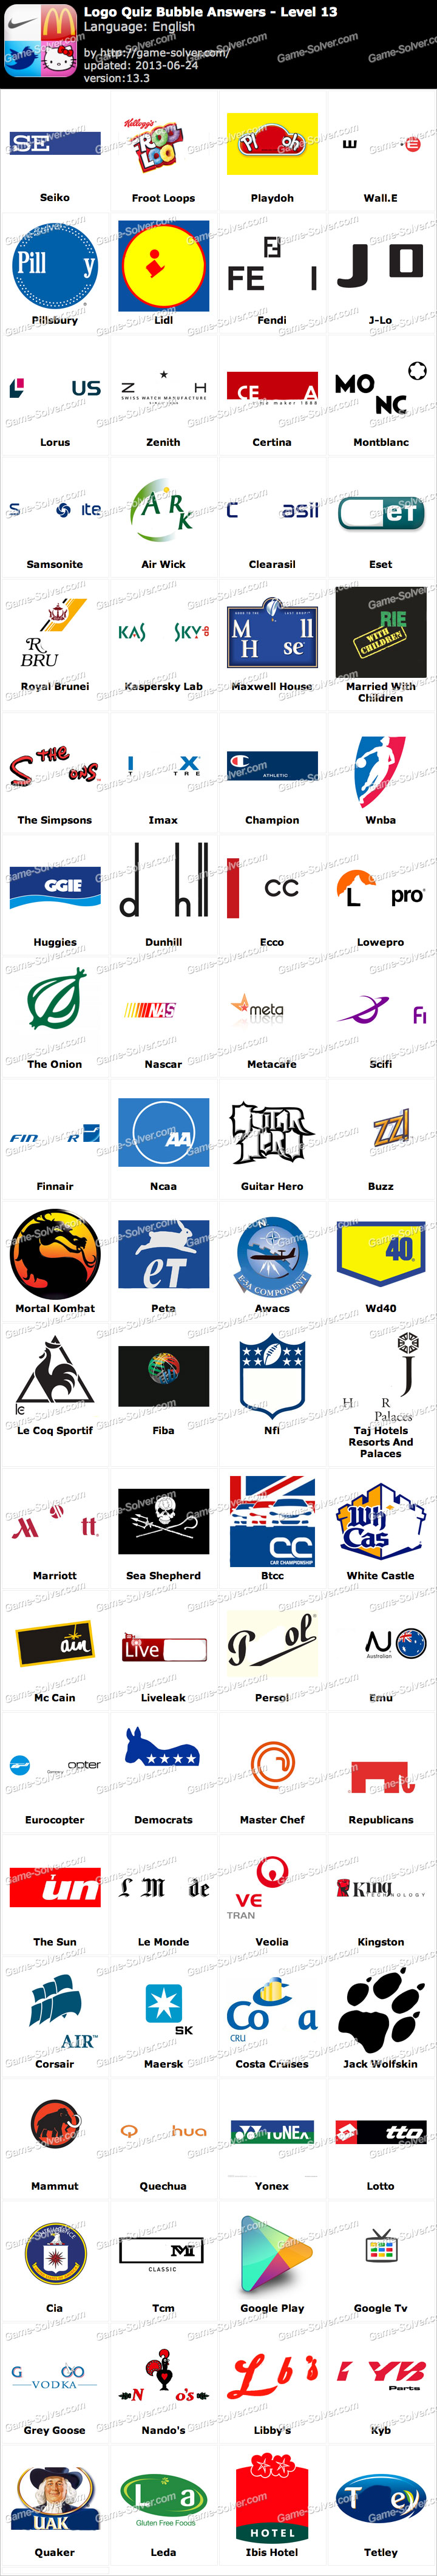 Logo Quiz Answers Level 13 : answers, level, Bubble, Answers, Level, Quiz,, Answers,, Guess